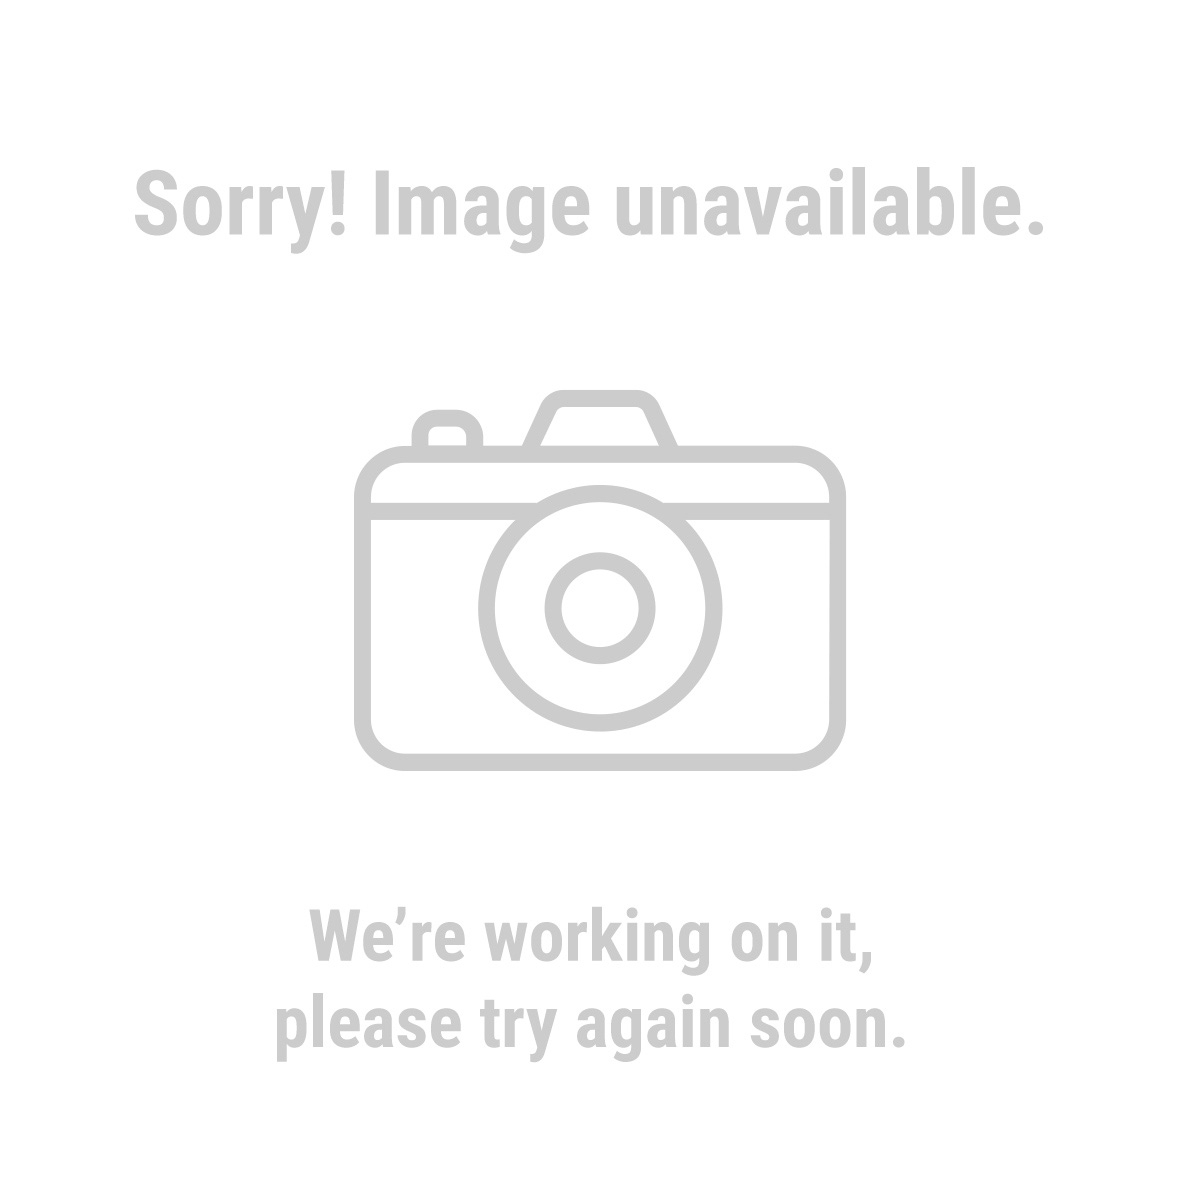 "Warrior 68137 4-1/2"" Depressed Center Cut-off Wheel for Metal"